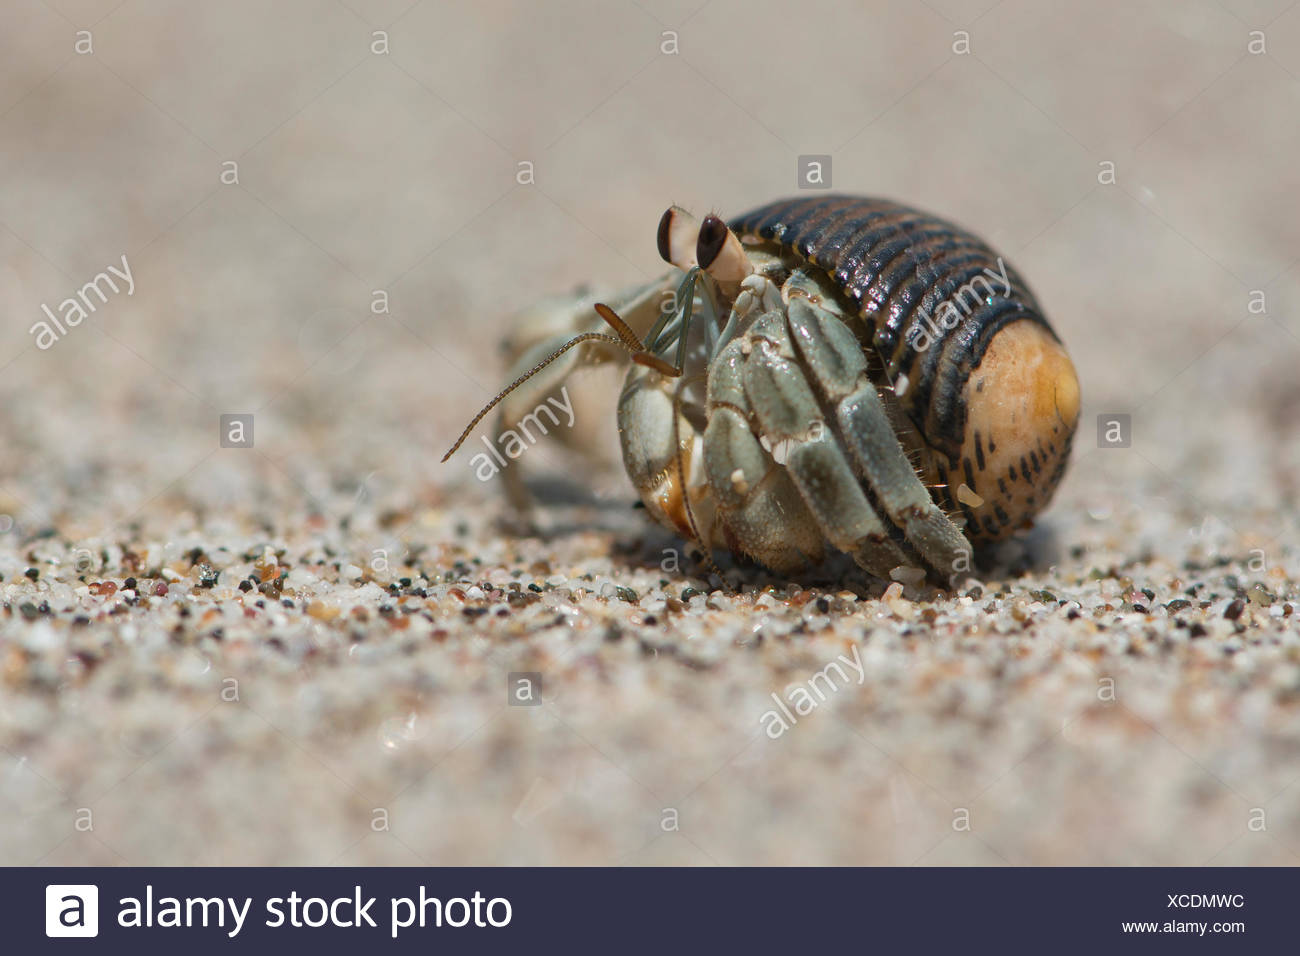 Ecuadorian Hermit Crab (Coenobita compressus) in the sand, Manuel Antonio National Park, Puntarenas Province, Costa Rica - Stock Image